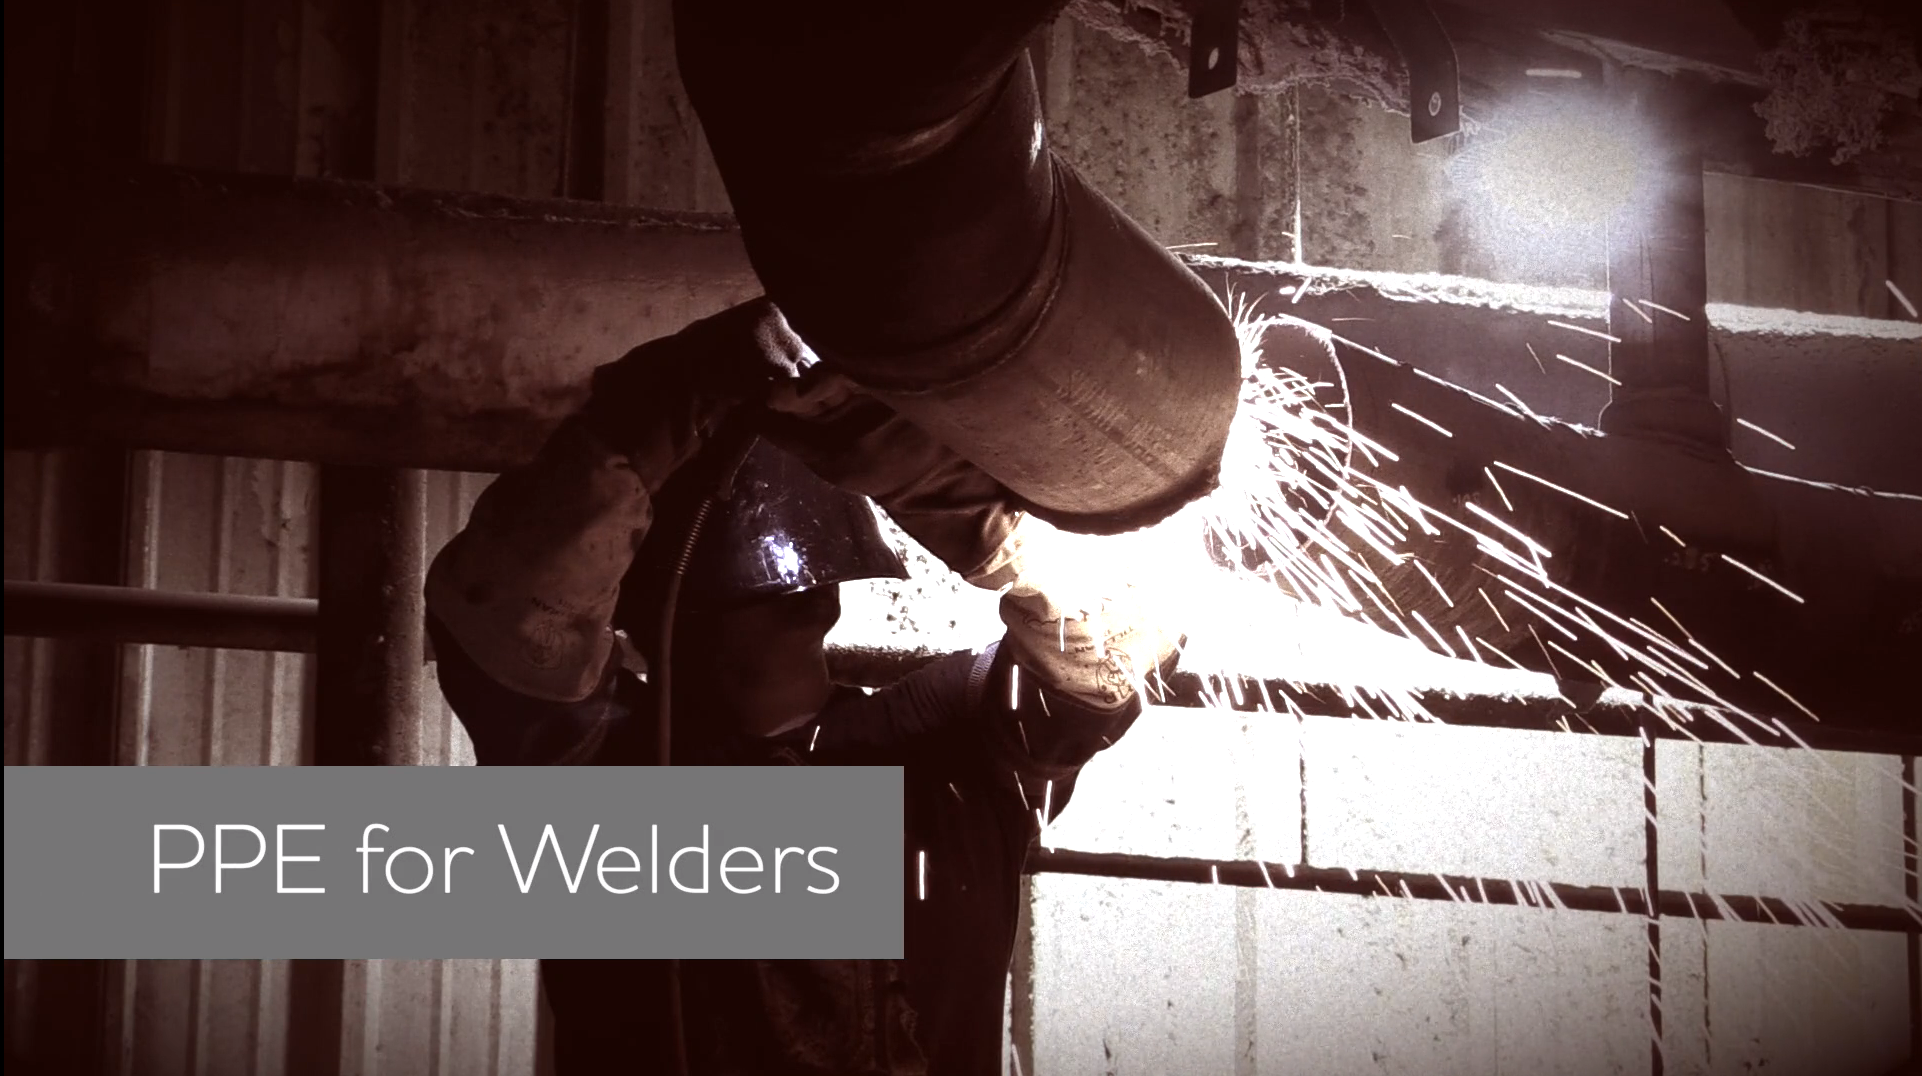 Personal Protective Equipment (PPE) for Welders